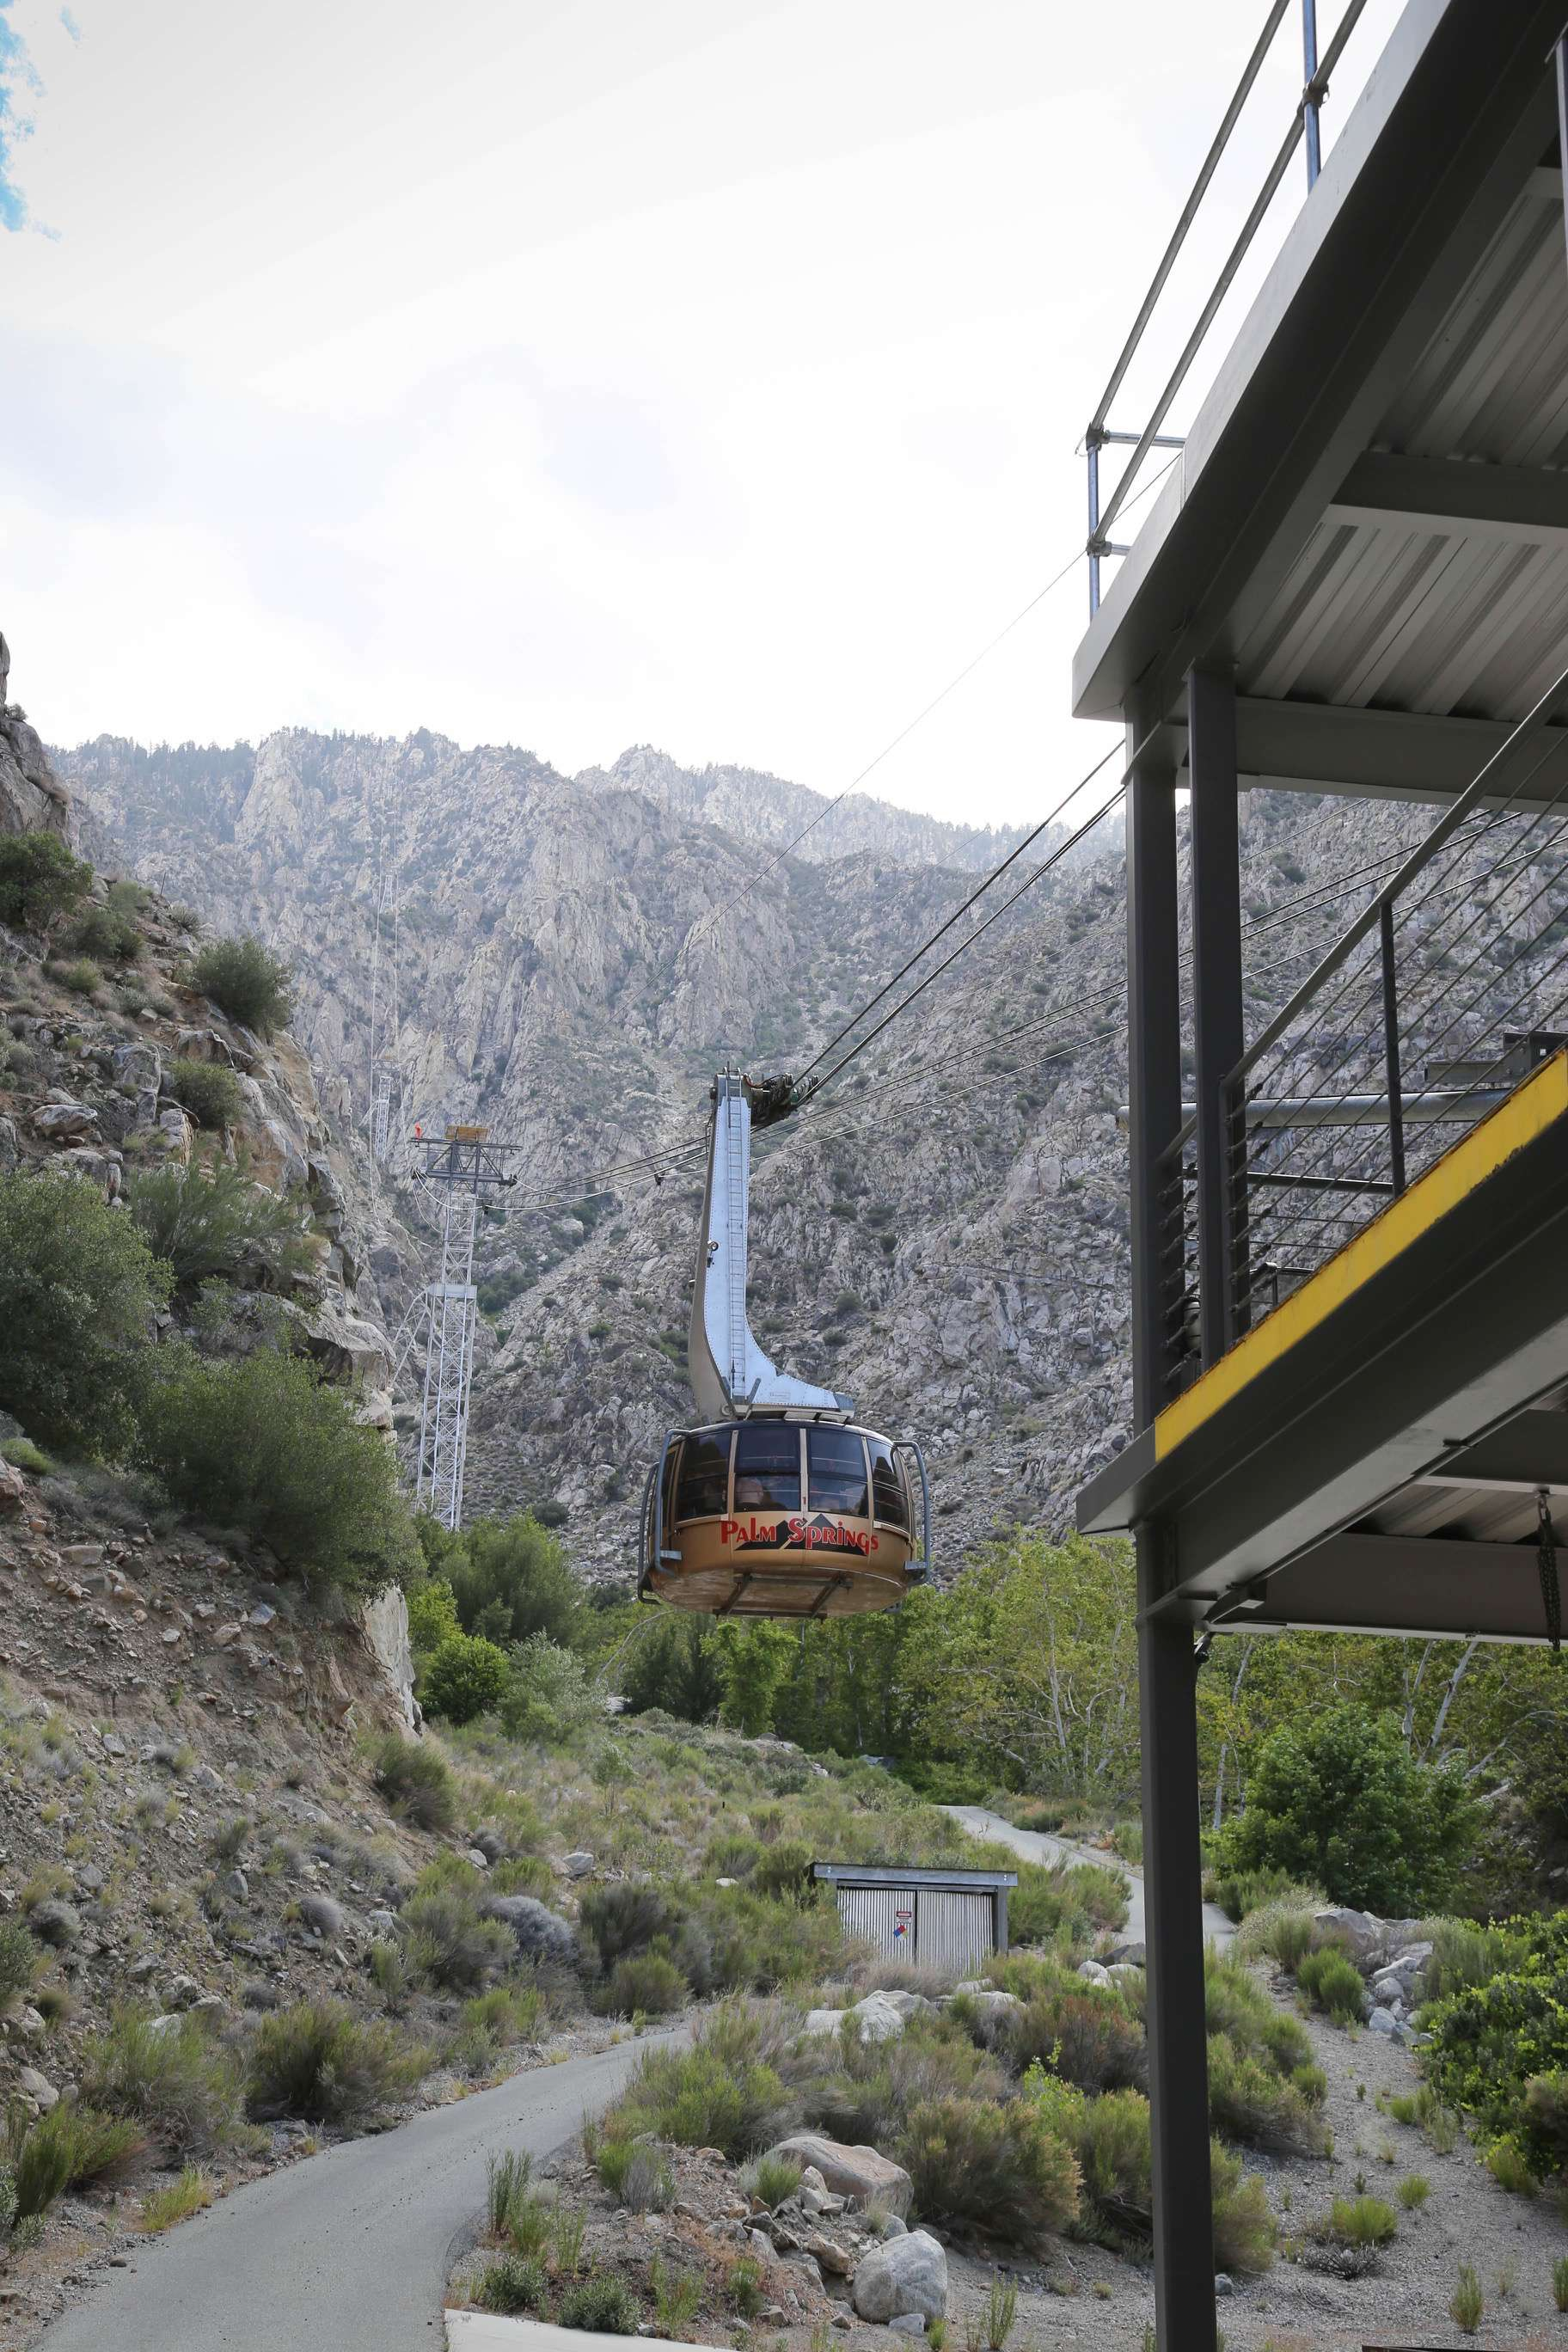 One of the round aerial tramway cars sets off to the summit of Mt. San Jacinto.